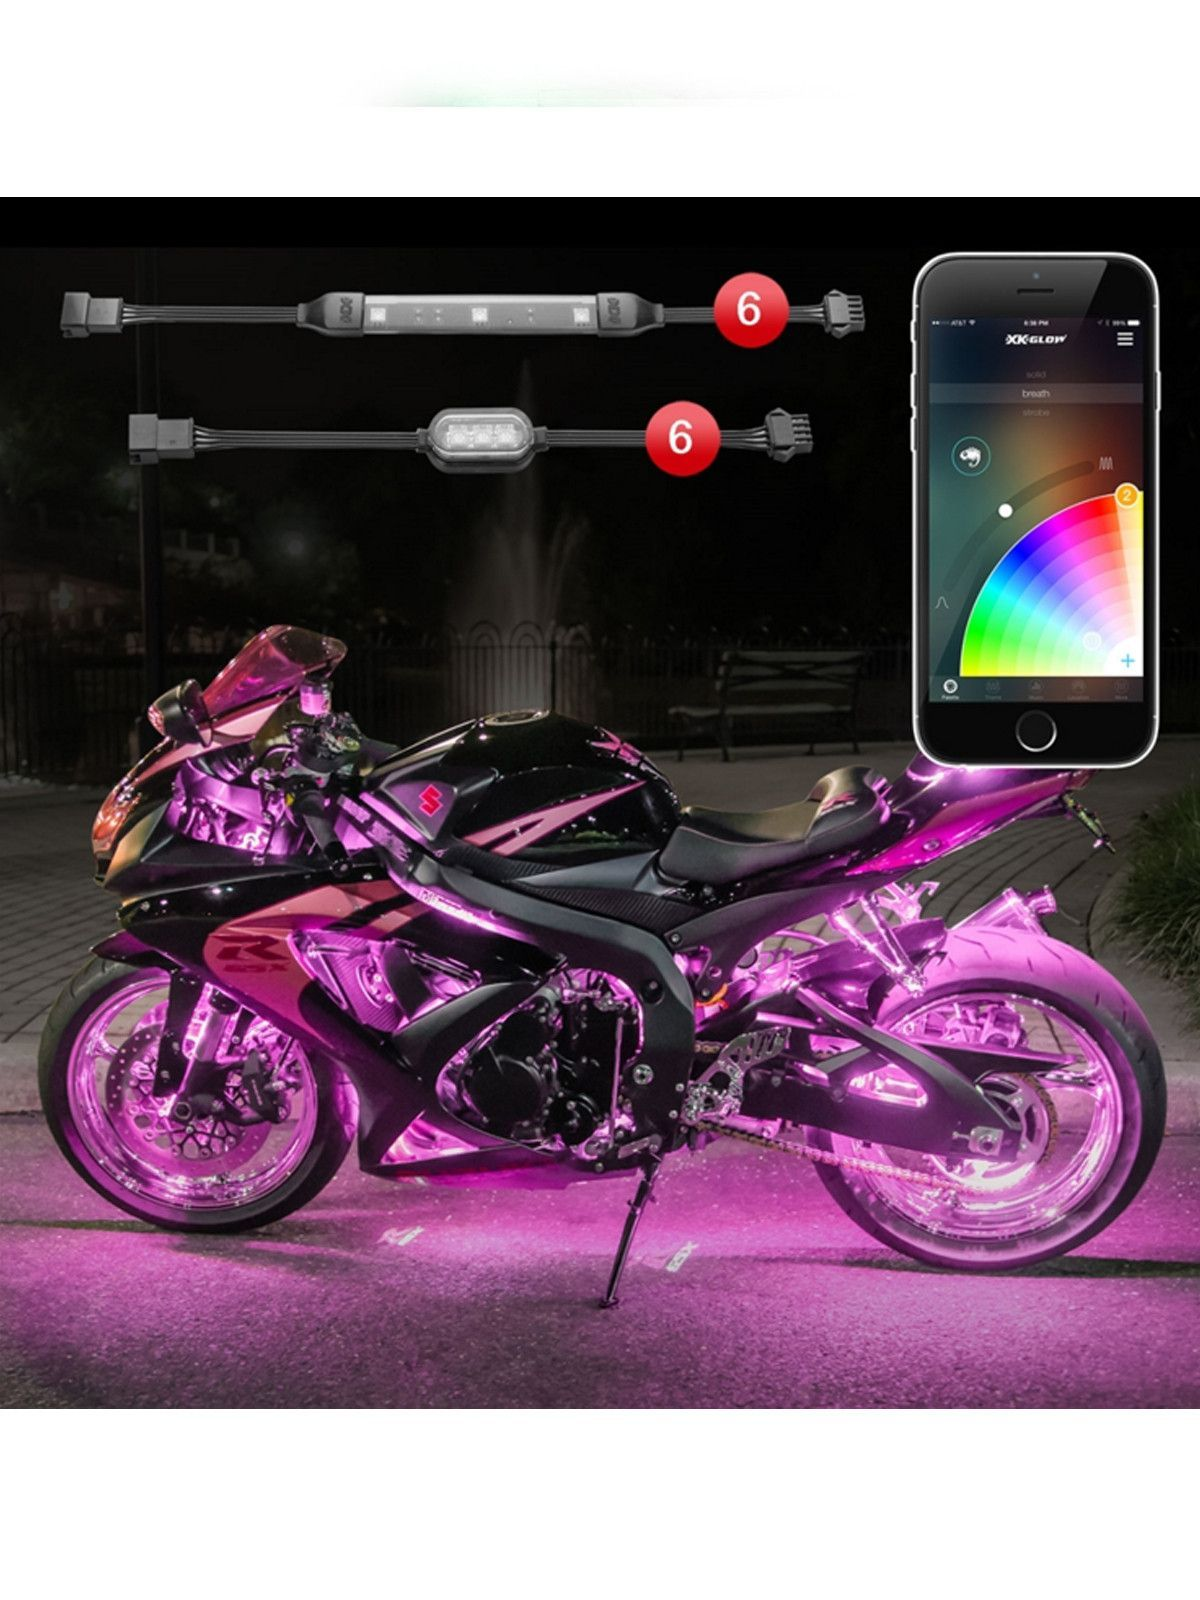 Led Light Strips For Motorcycles Xk Glow 6 Pod 6 Strip App Control Motorcycle Led Accent Light Kit